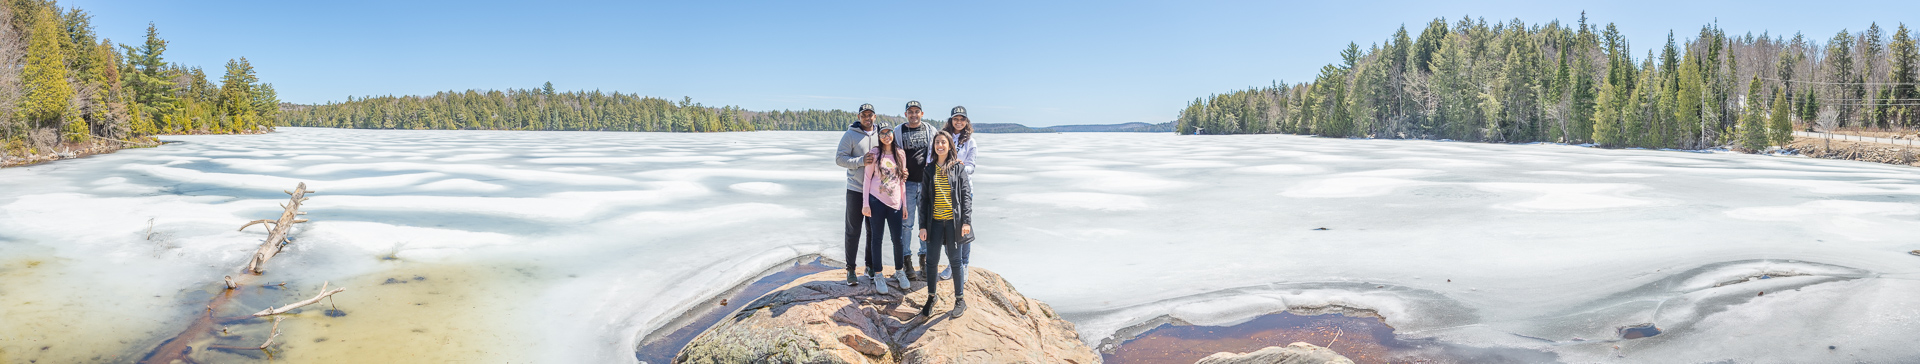 Visiting Smoke Lake point, Algonquin Park